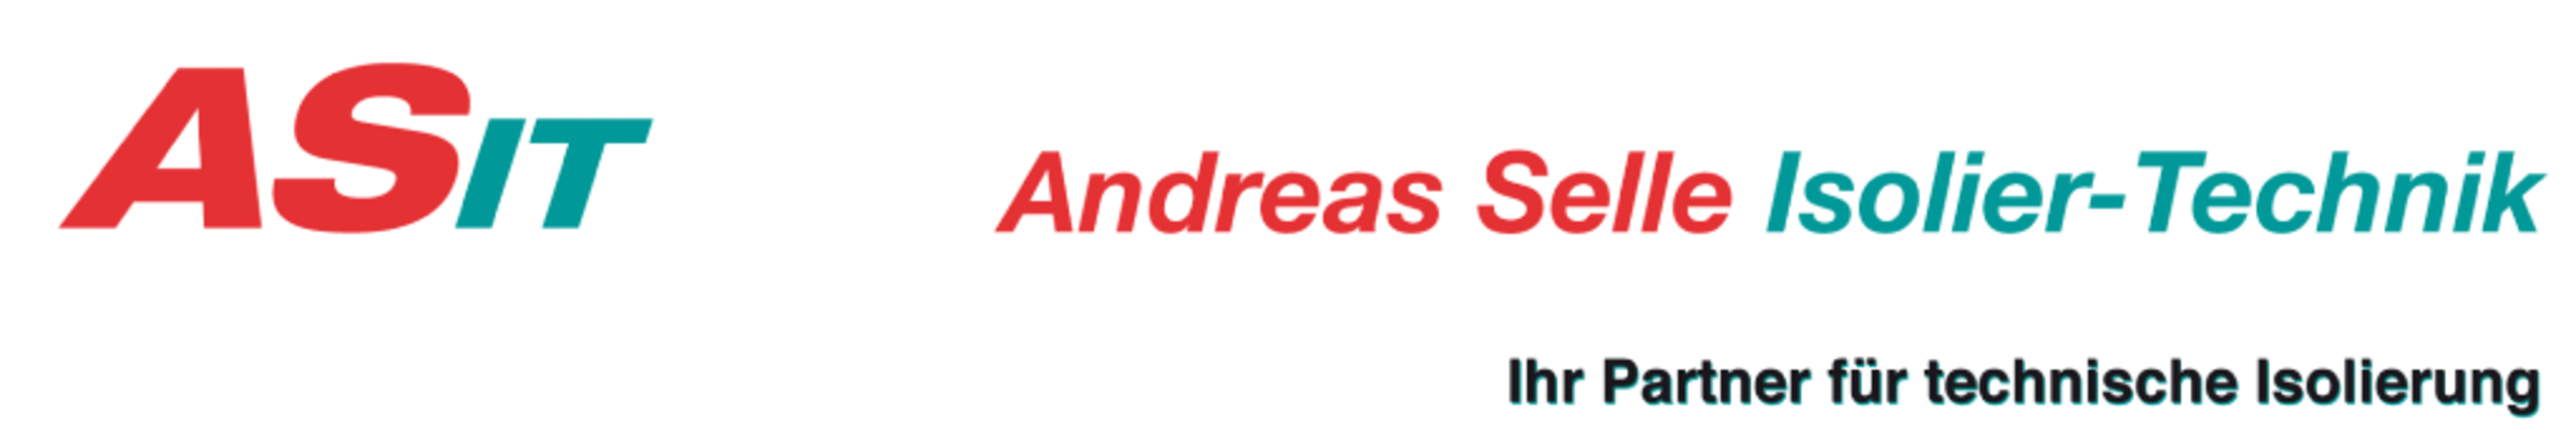 shows the logo from the company Andreas Selle Isoliertechnik